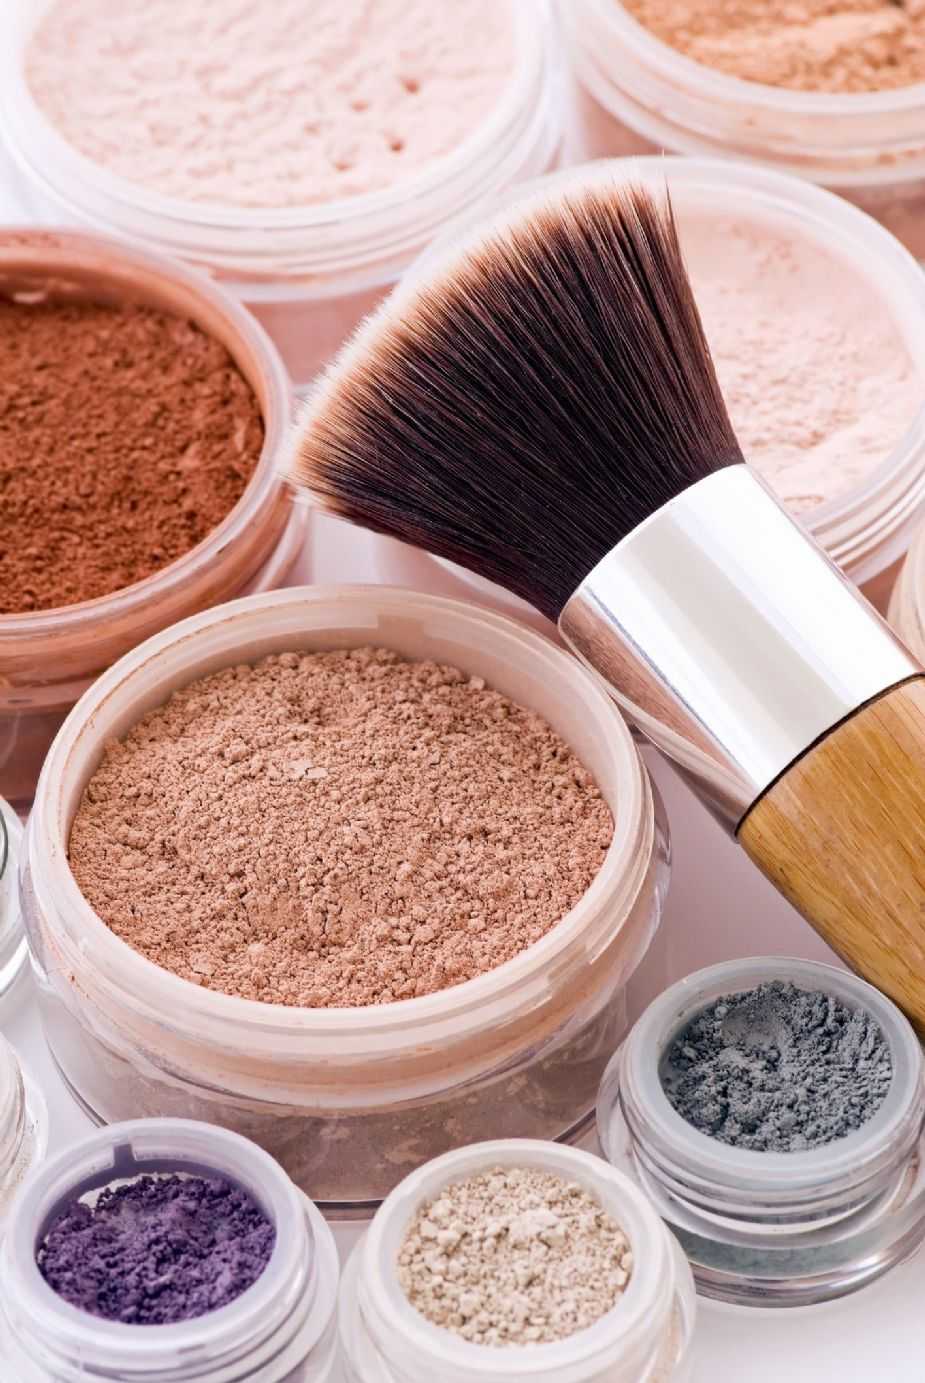 Mineral Make Up Erfahrungen